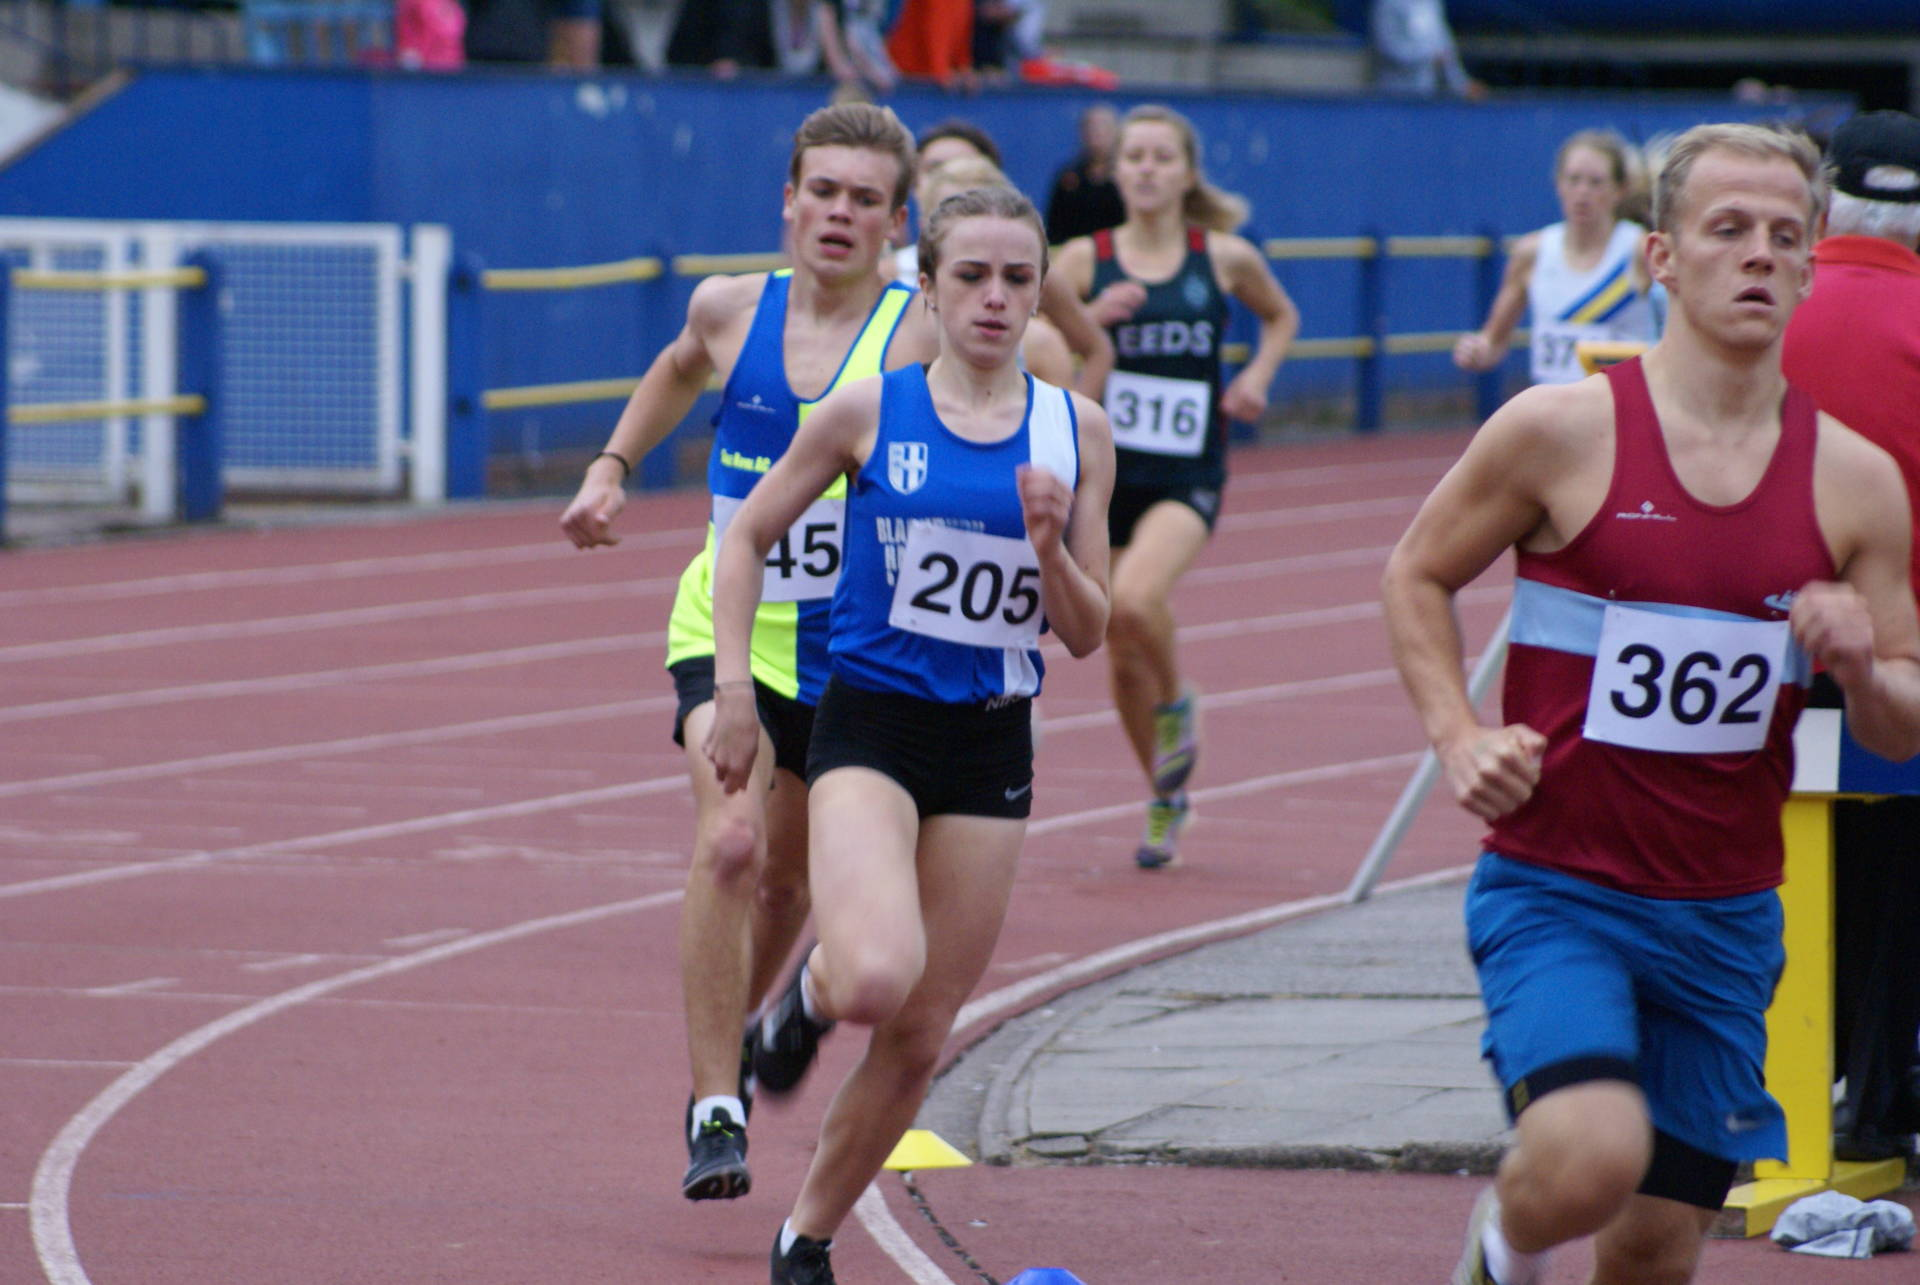 Night of PB's for Harriers at Trafford – Ben takes 2nd place in Potteries 'Arf – New 200m PB for Ross at Northern Championships – Weets Fell Race – Carmen 2nd in Rochdale 3 Day Event & Joanne Wins Knowl Hill Fell Race – Top 6 for Ben & 2nd Woman for Victoria at Catforth 10k